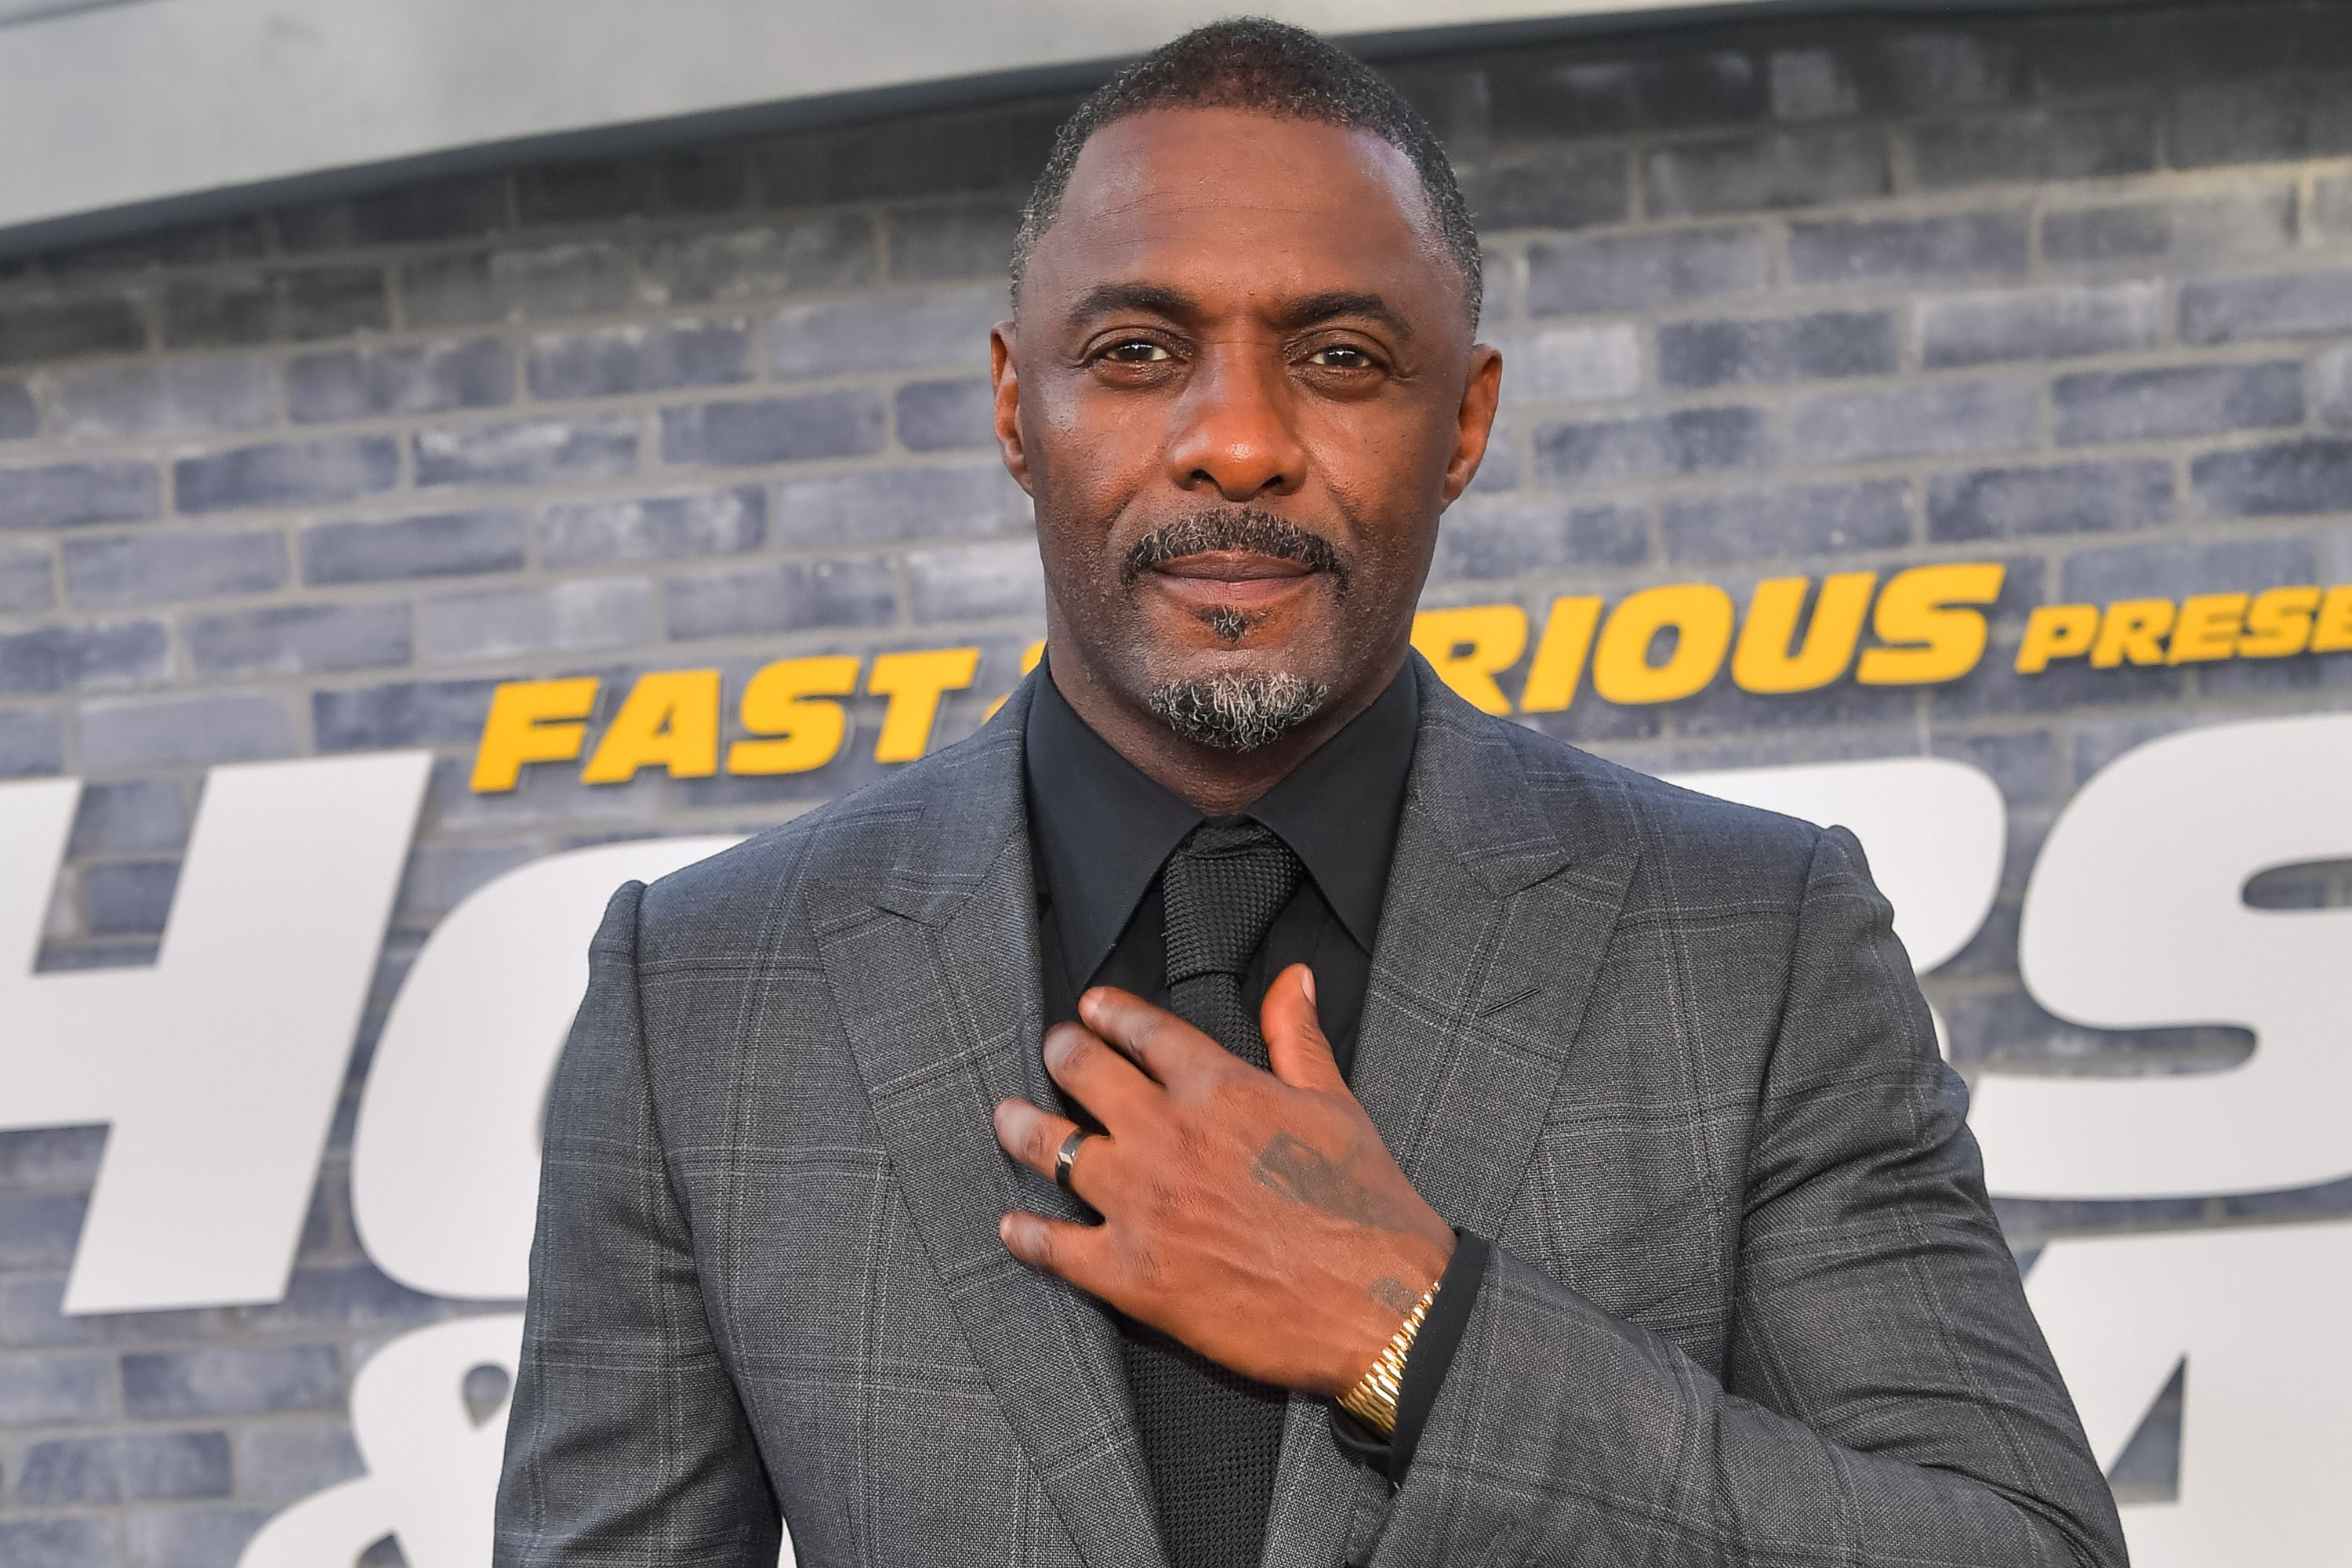 Idris Elba poses in front of a Fast & Furious sign